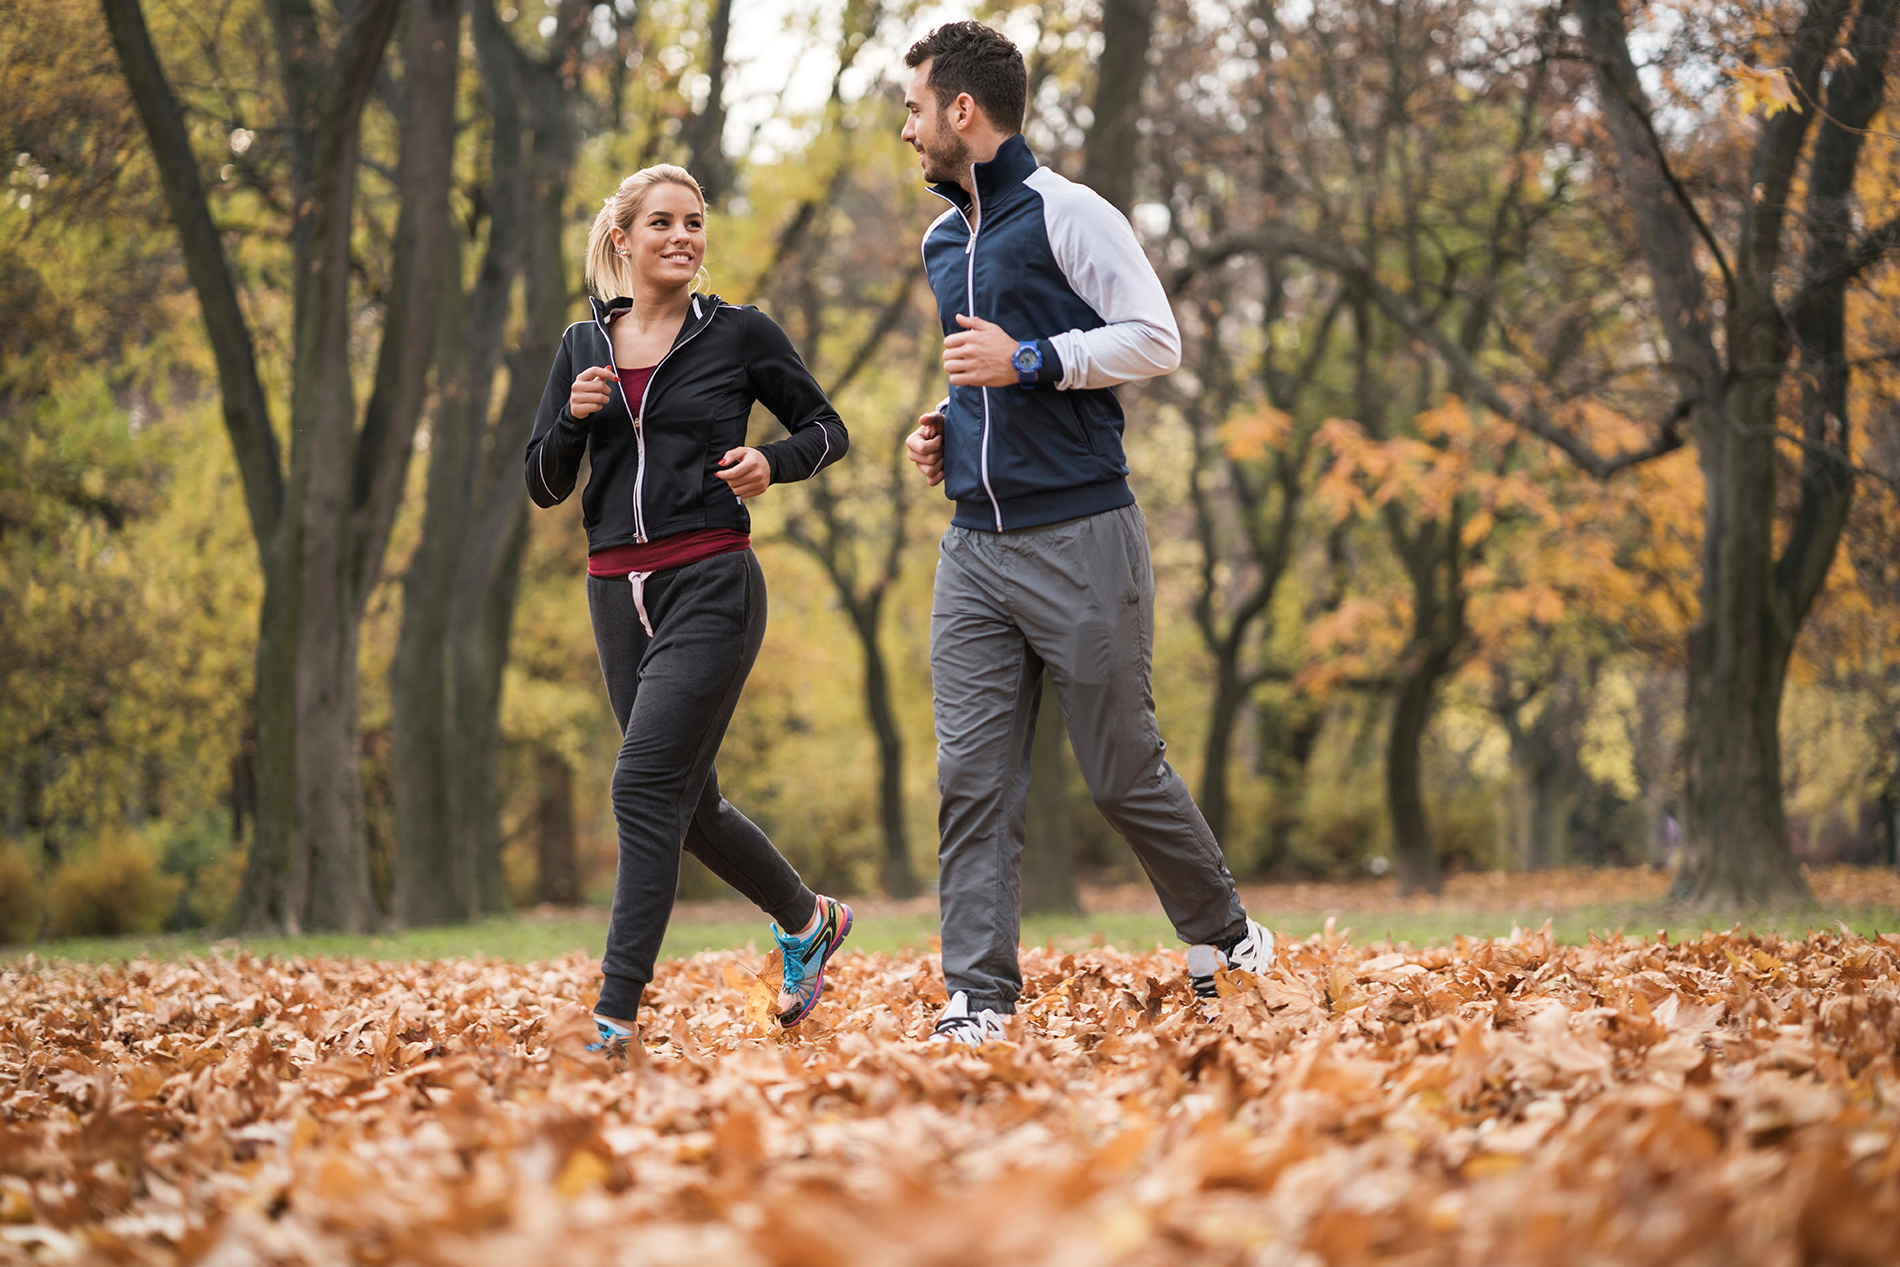 couple-jogging-in-woods